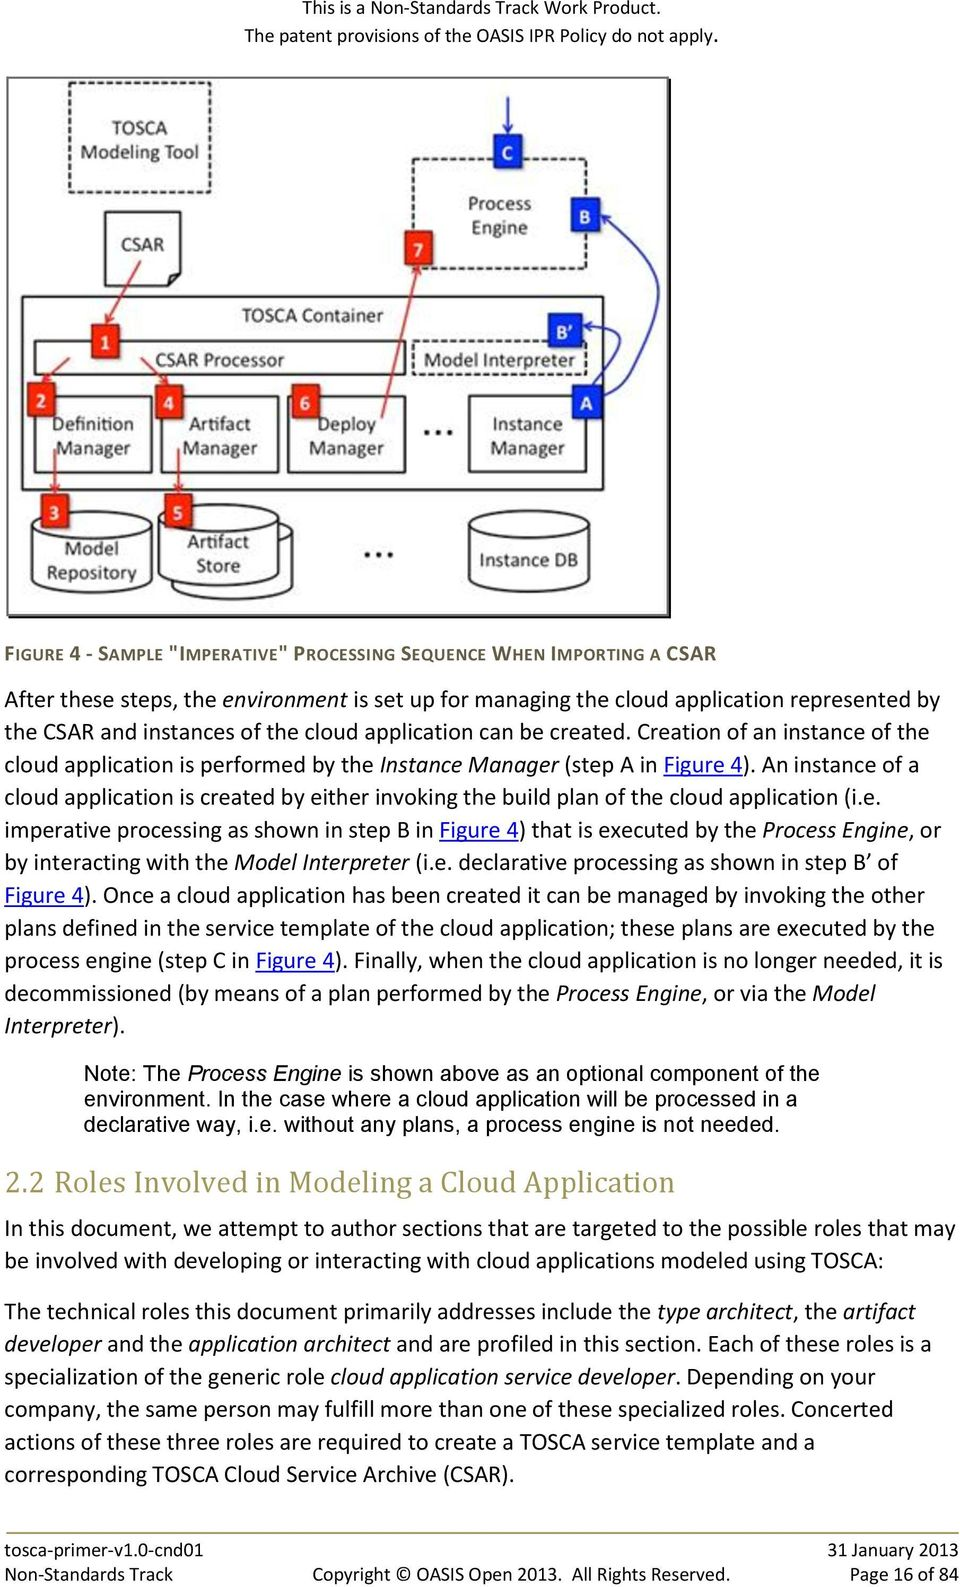 An instance of a cloud application is created by either invoking the build plan of the cloud application (i.e. imperative processing as shown in step B in Figure 4) that is executed by the Process Engine, or by interacting with the Model Interpreter (i.